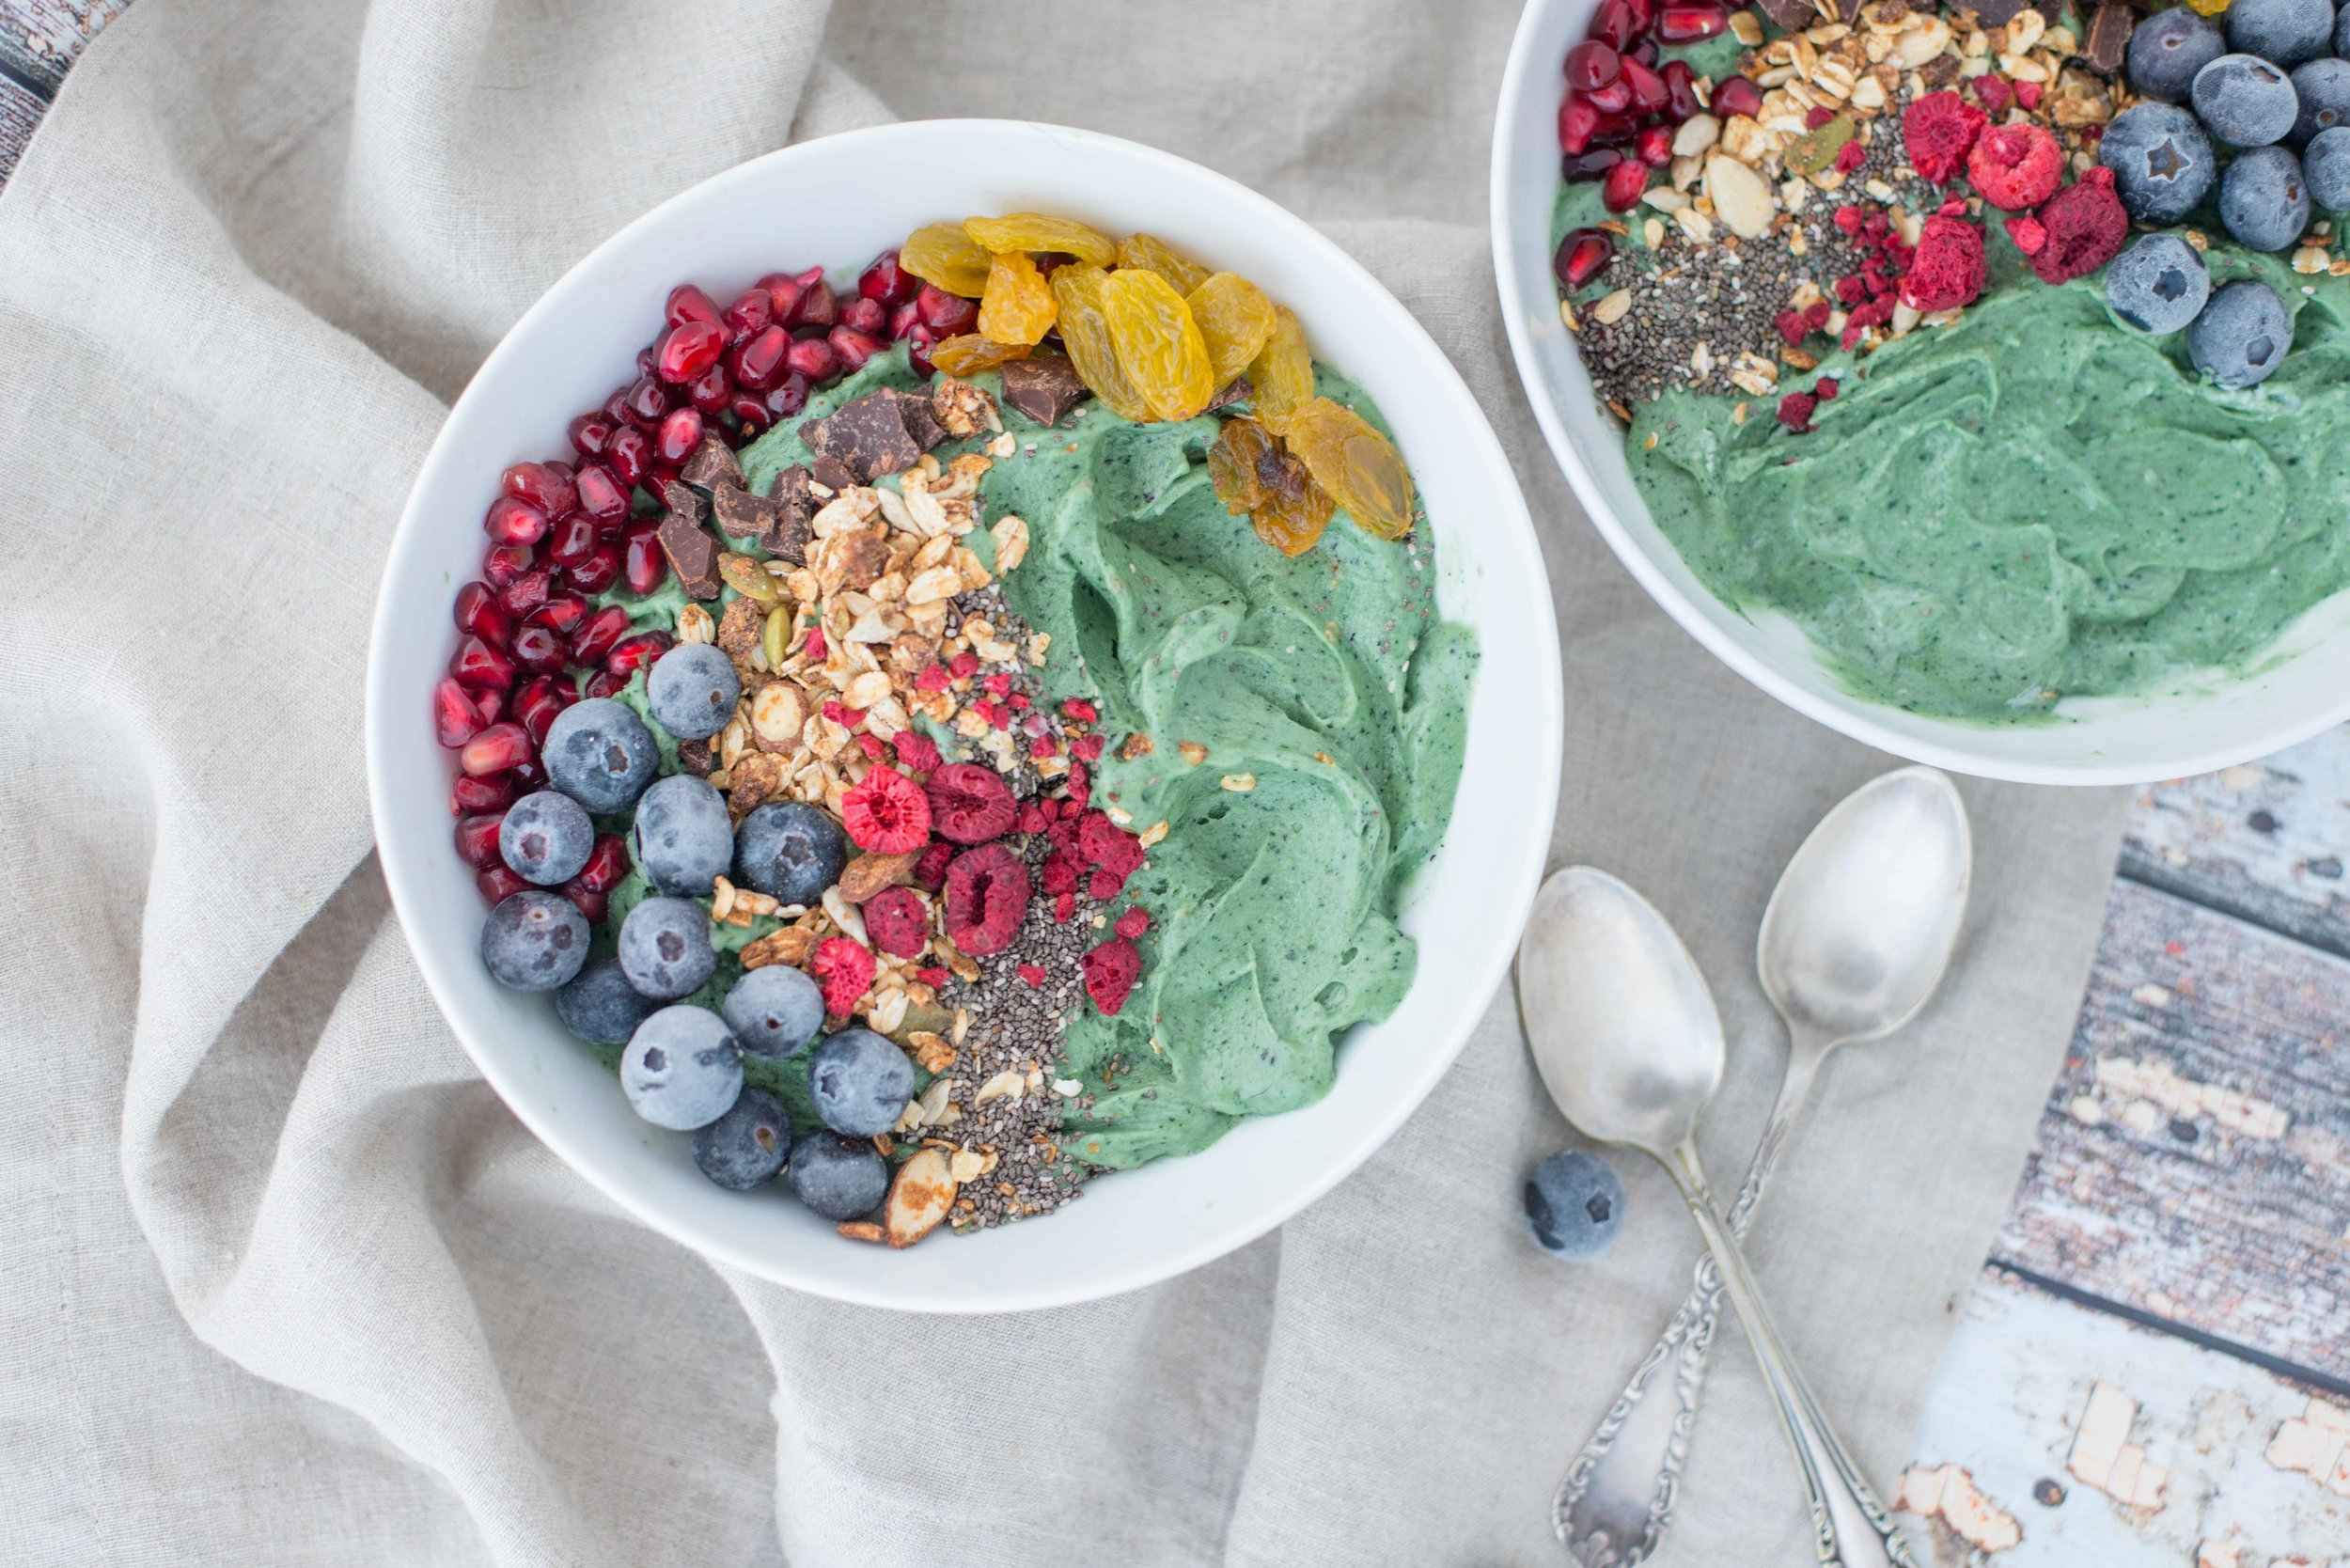 DSC_6559_Riley_Yahr_Spirulina_Smoothie_Bowl.jpg